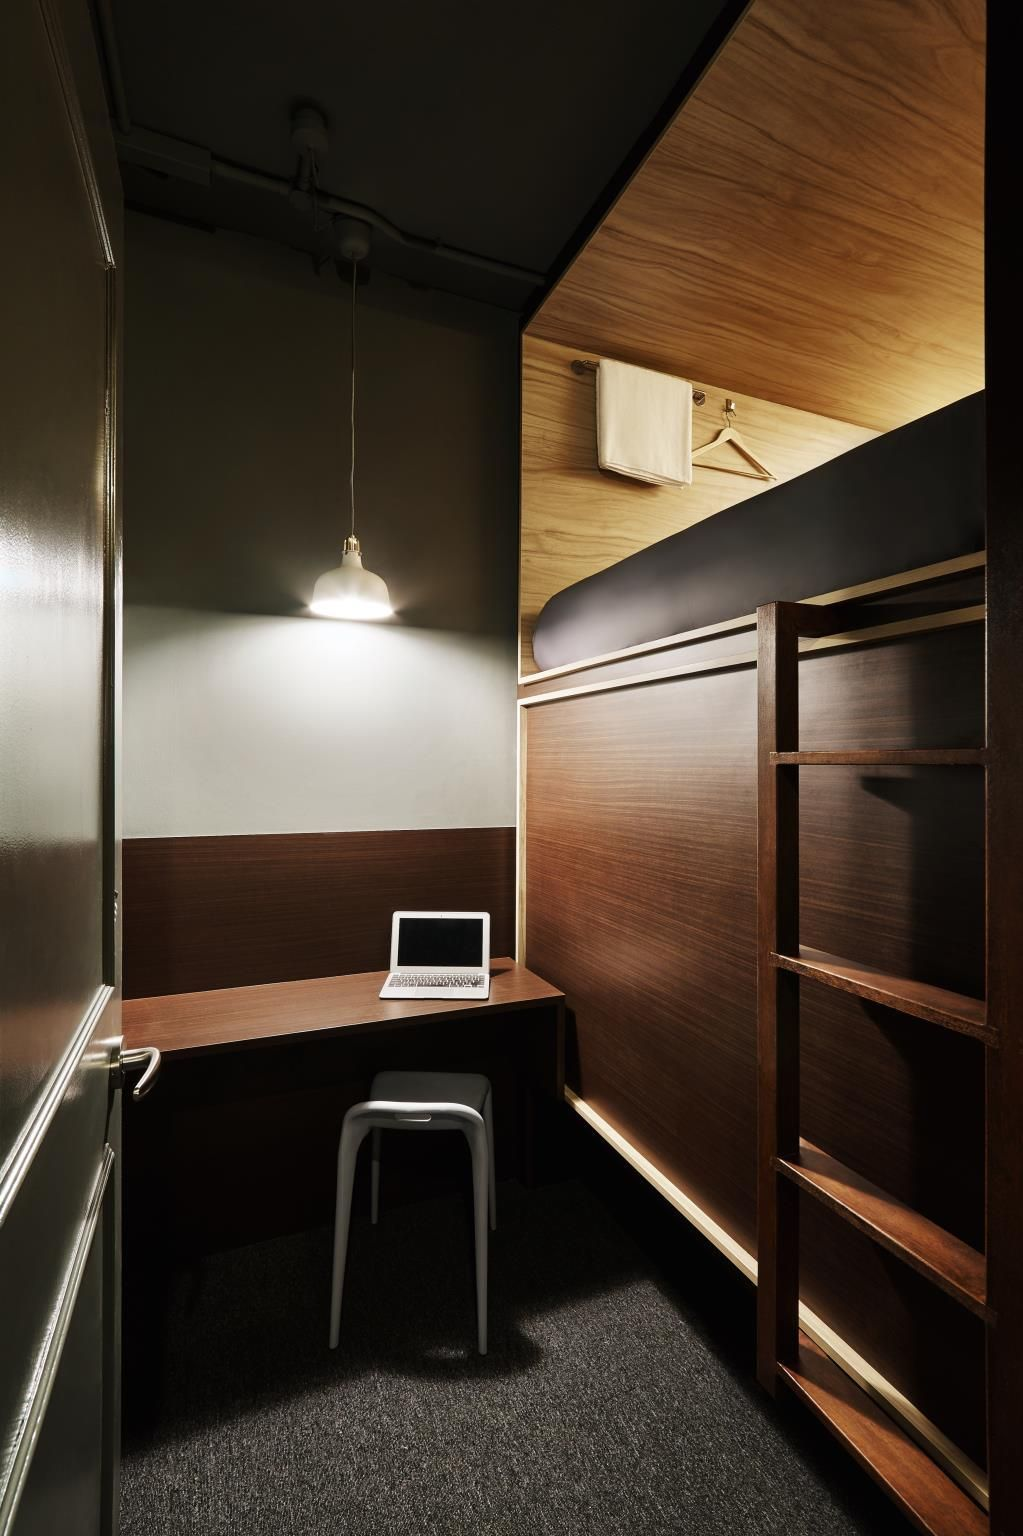 Best Price on The Pod Beach Road Boutique Capsule Hotel